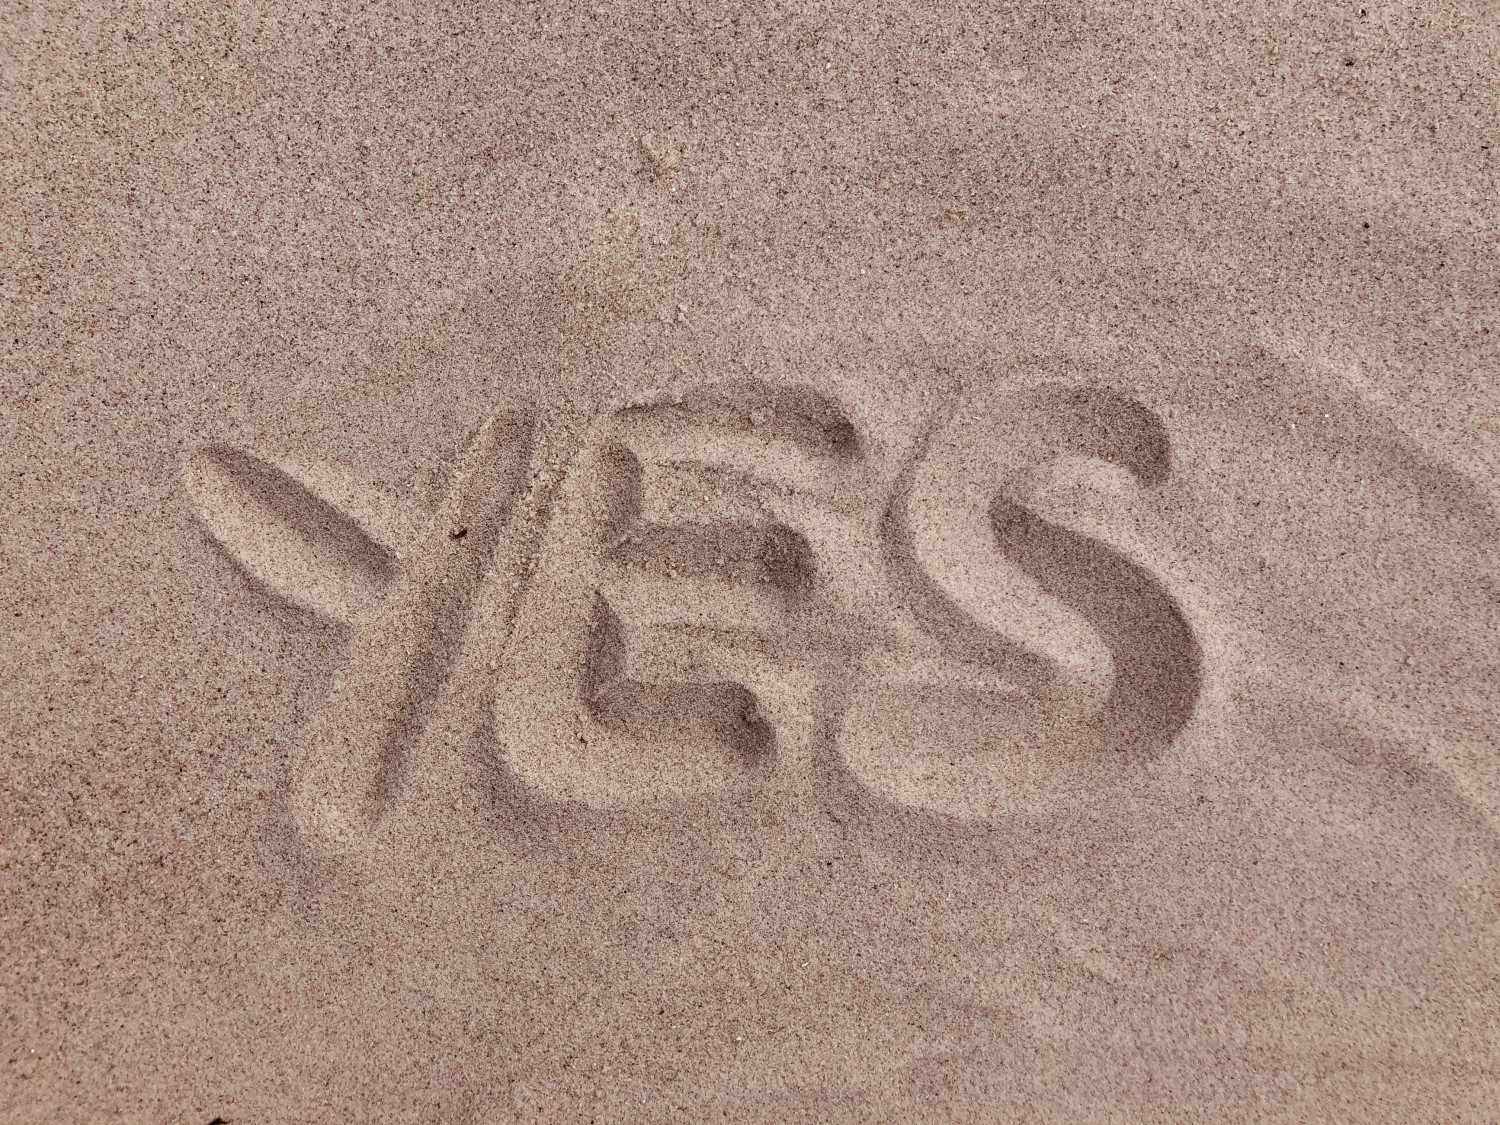 The word Yes written in sand